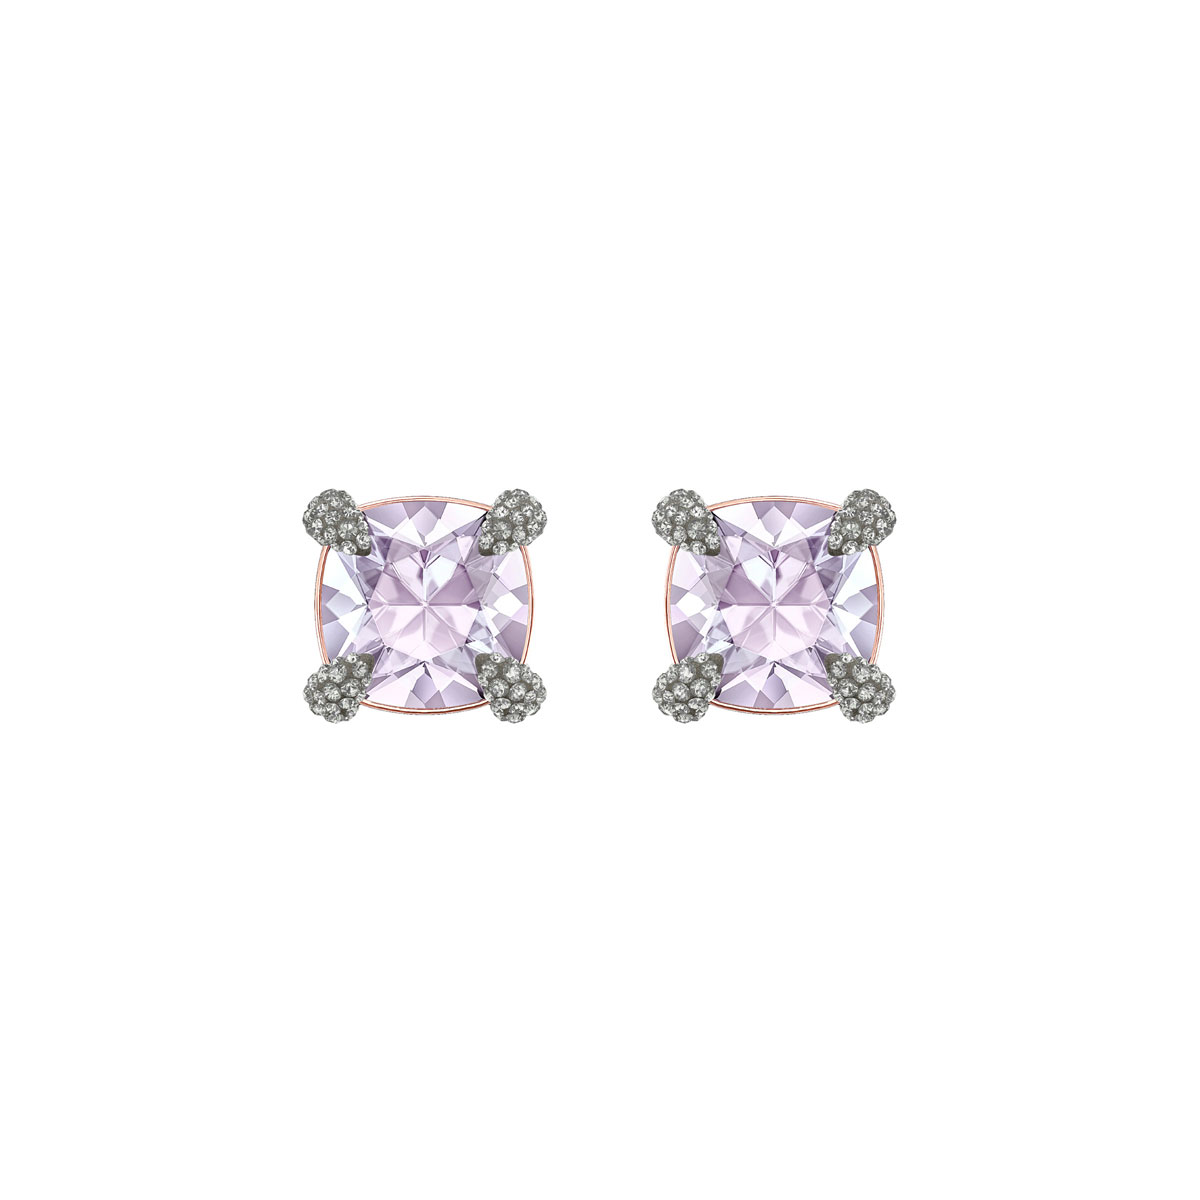 Swarovski Make Pierced Earrings, Violet, Rose Gold